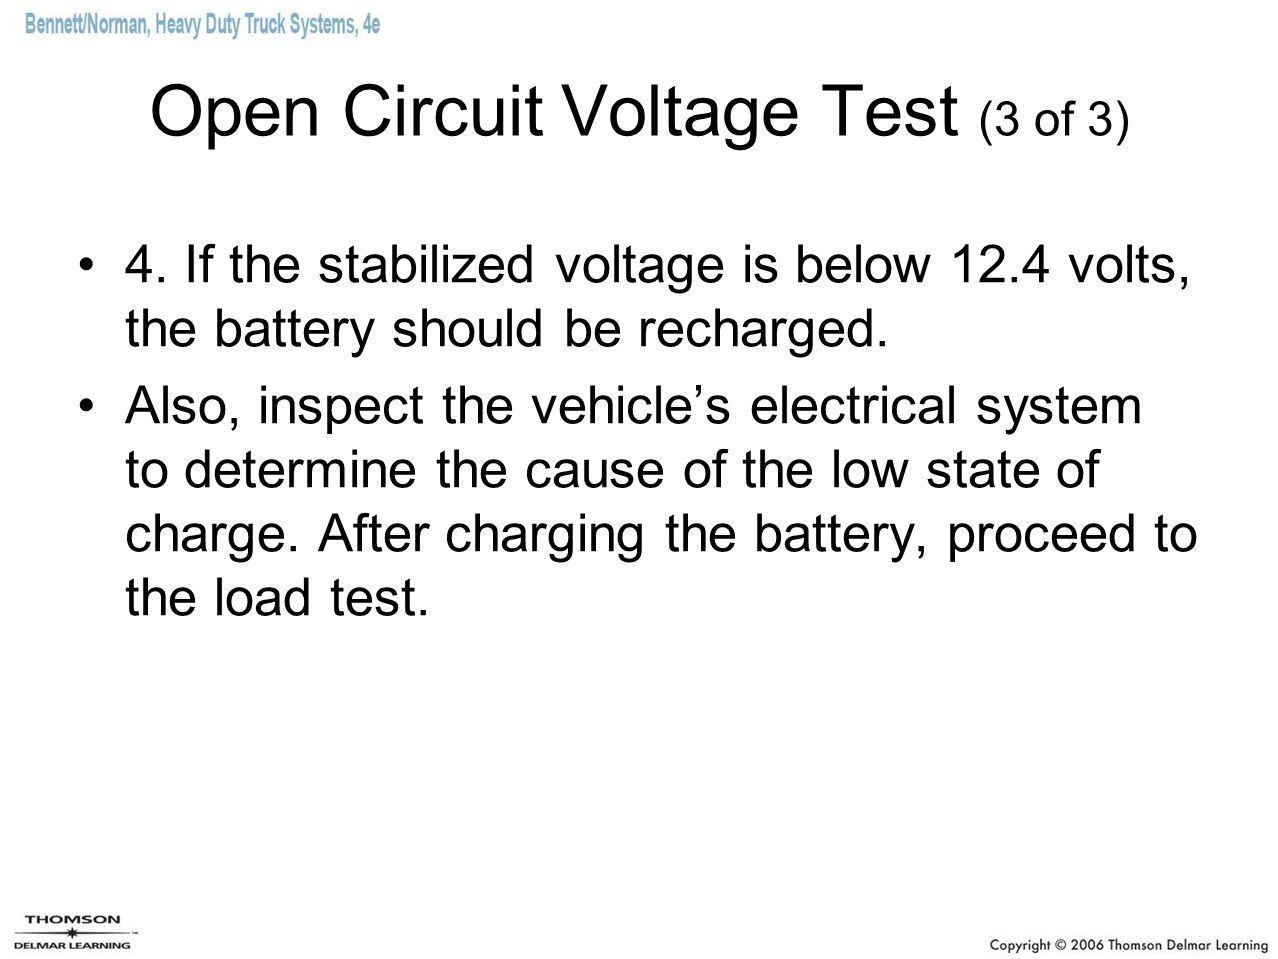 Open Circuit Voltage Test (3 of 3)